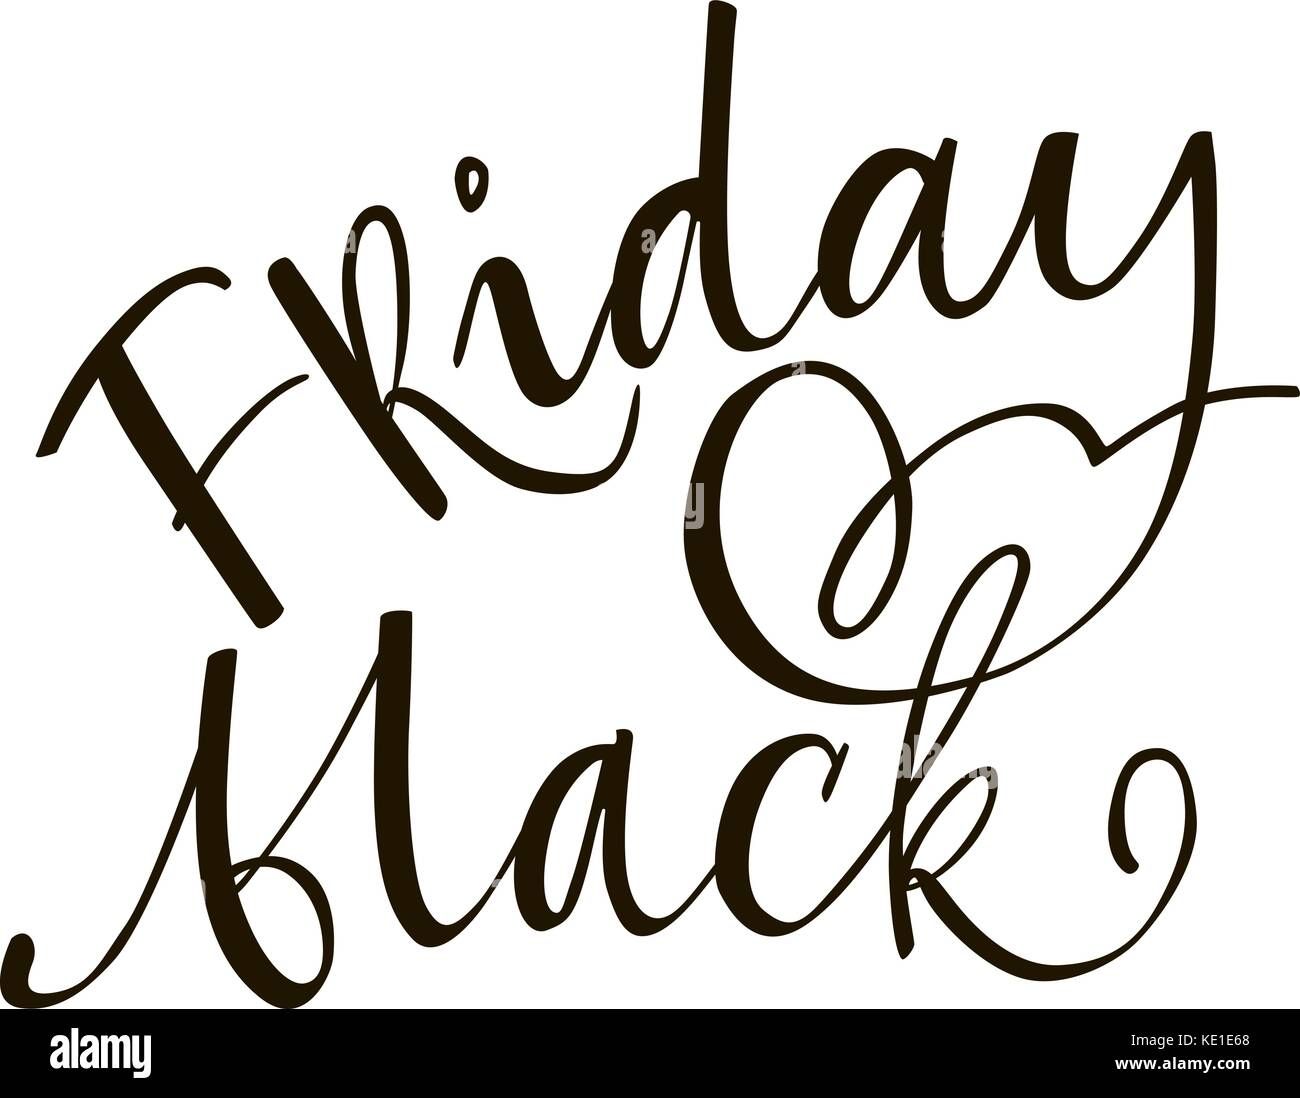 Friday black lettering phrase. Black and white hand lettering inscription to black friday and cyber monday deals - Stock Vector